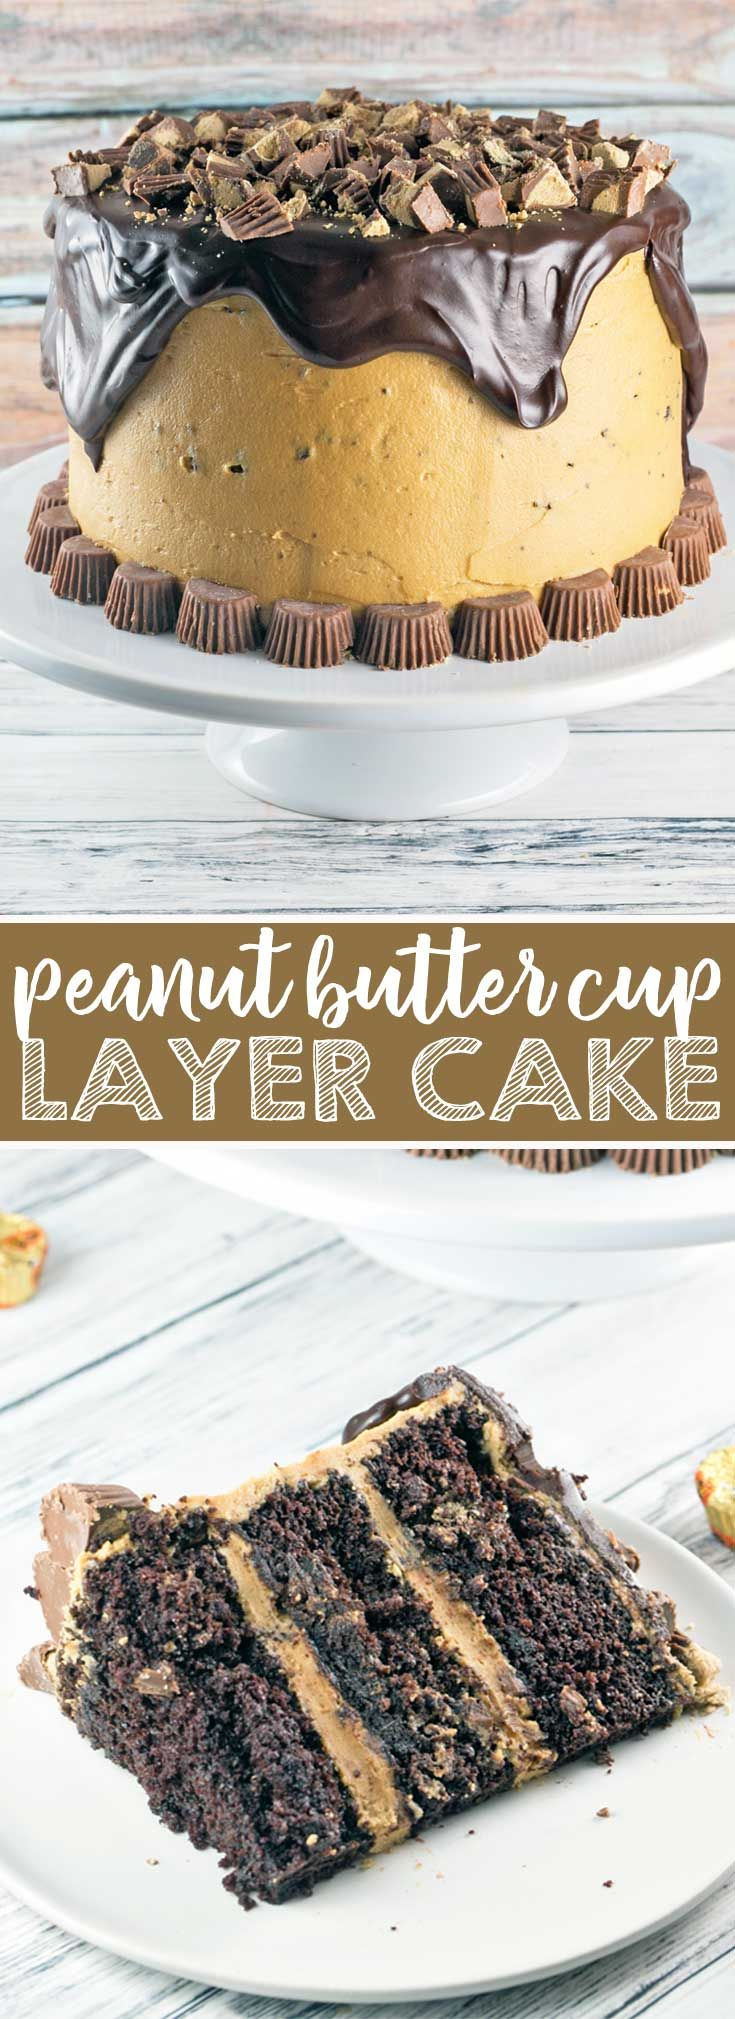 Chocolate Peanut Butter Cup Cake: Chocolate cake, peanut butter frosting, chocolate ganache, peanut butter cups. This Peanut Butter Cup Cake is a chocolate and peanut butter lover's dream. {Bunsen Burner Bakery} via @bnsnbrnrbakery